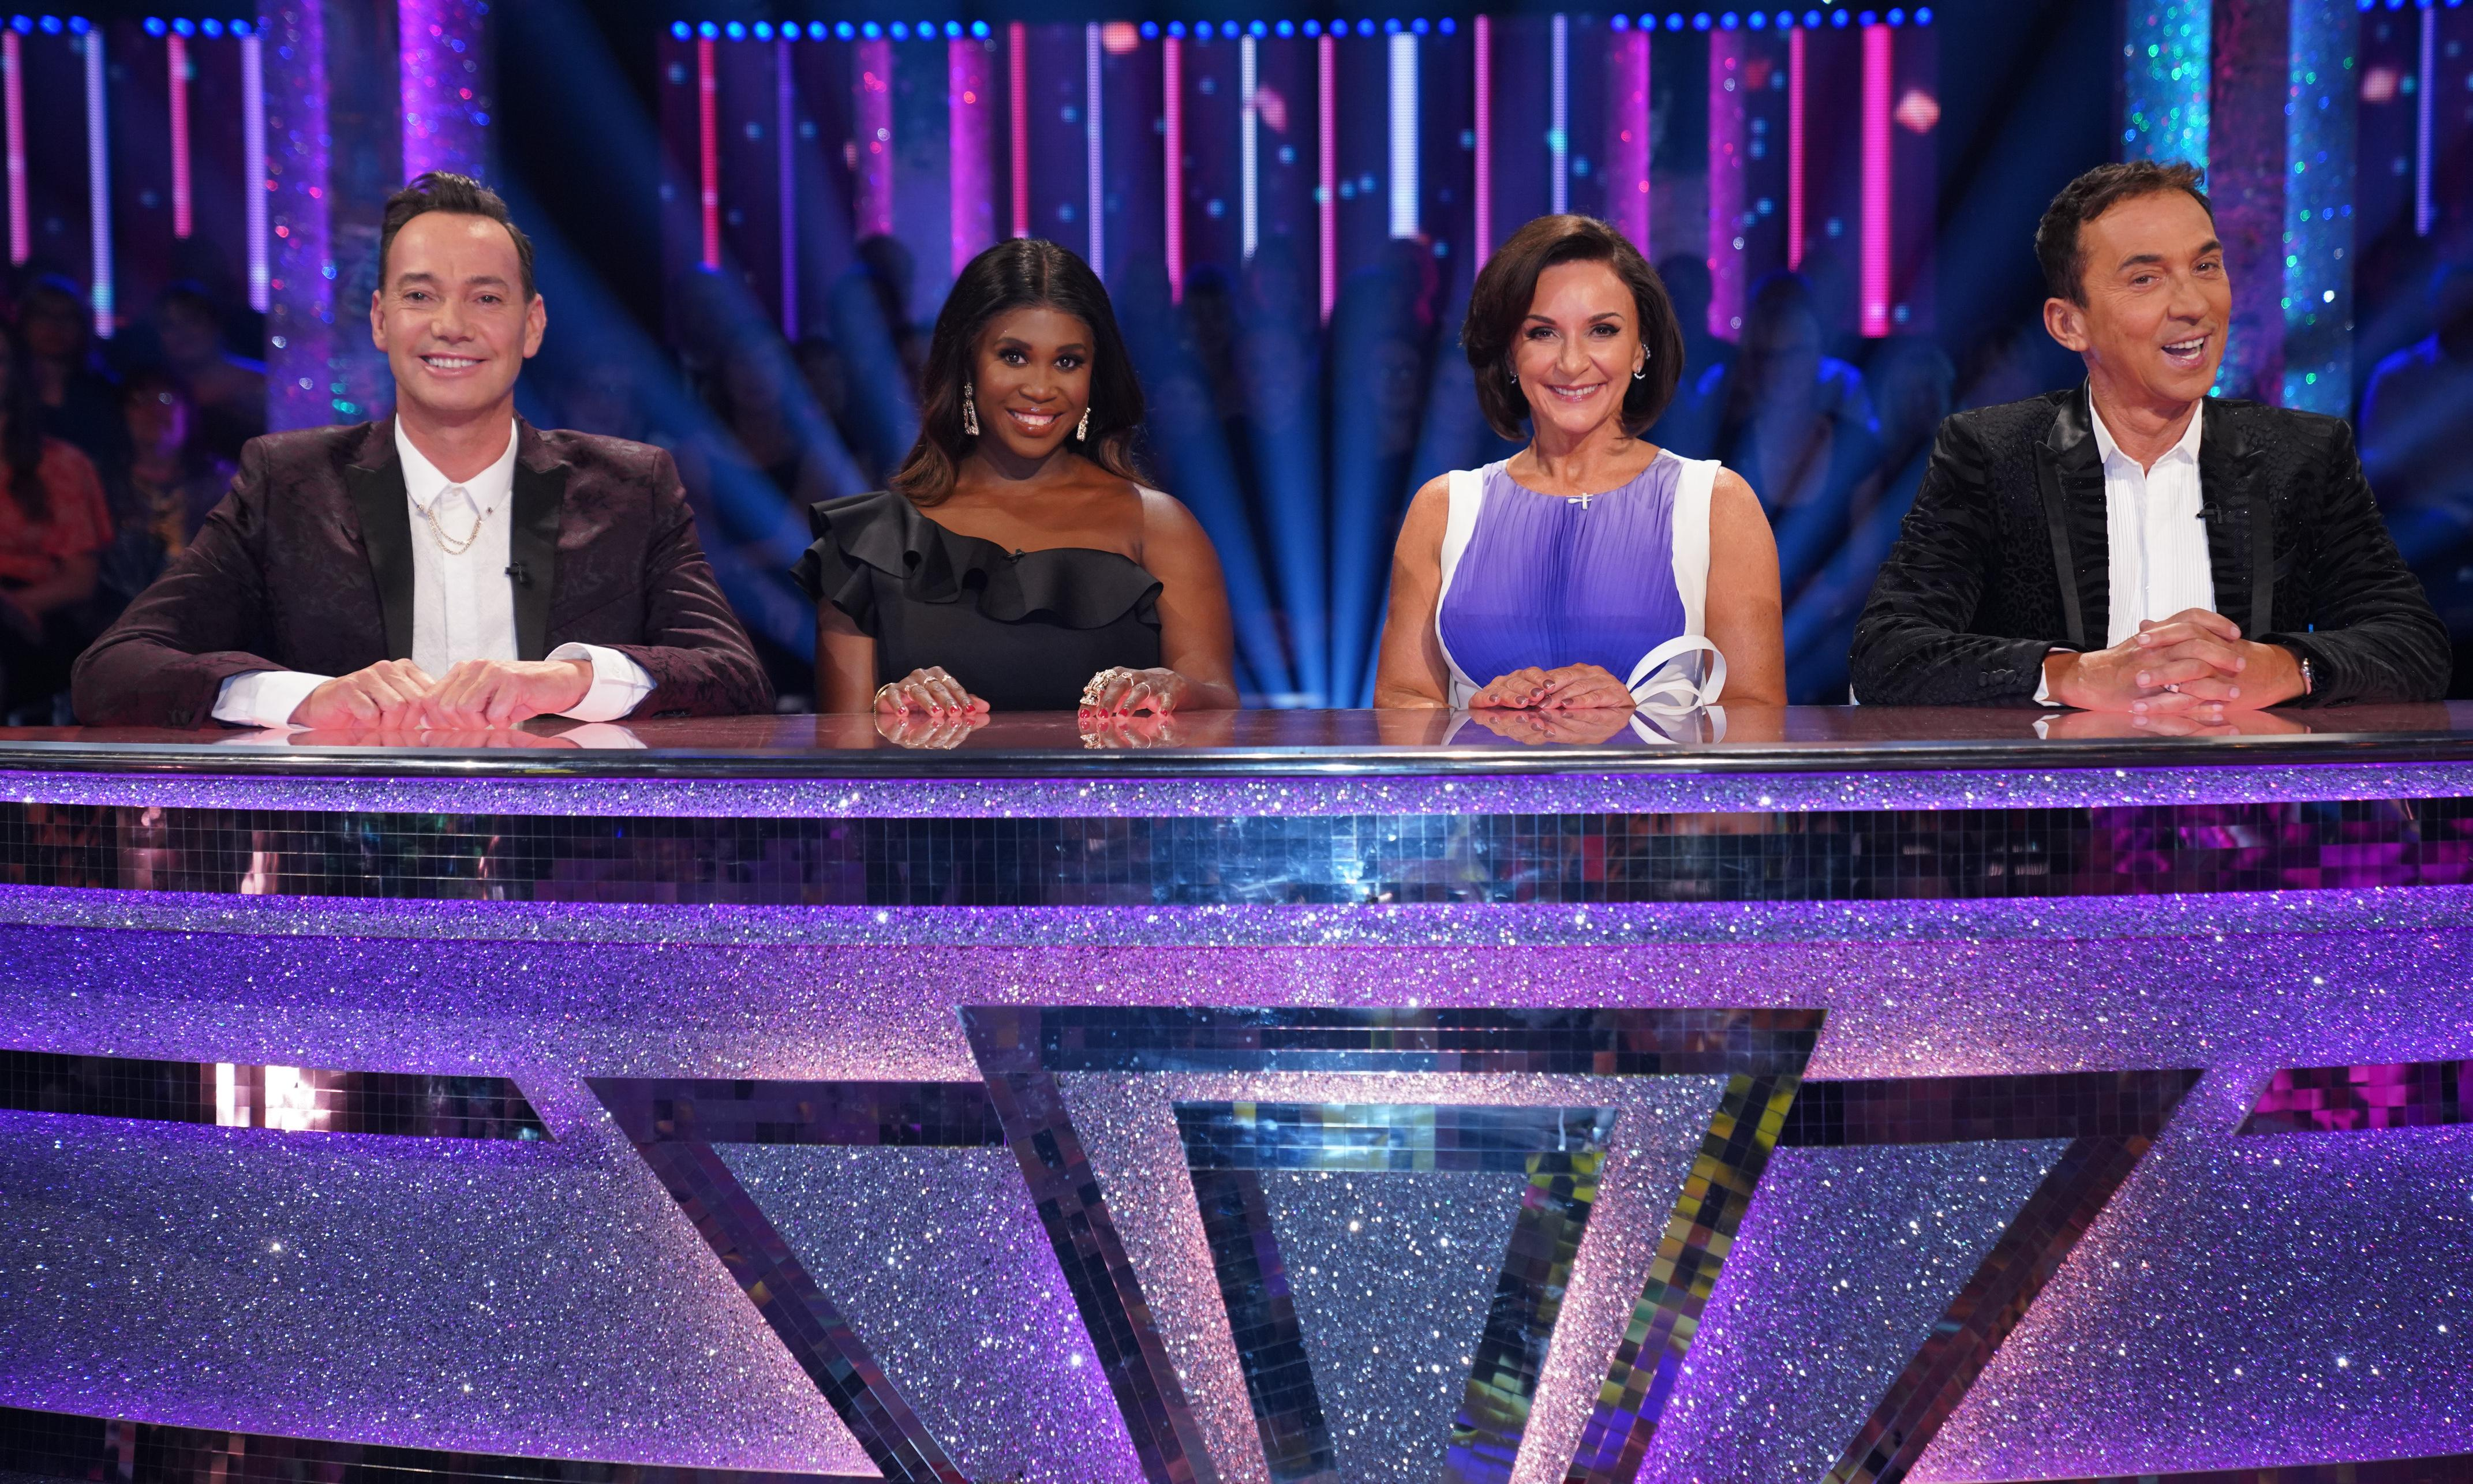 TV tonight: the pros strut their stuff on Strictly